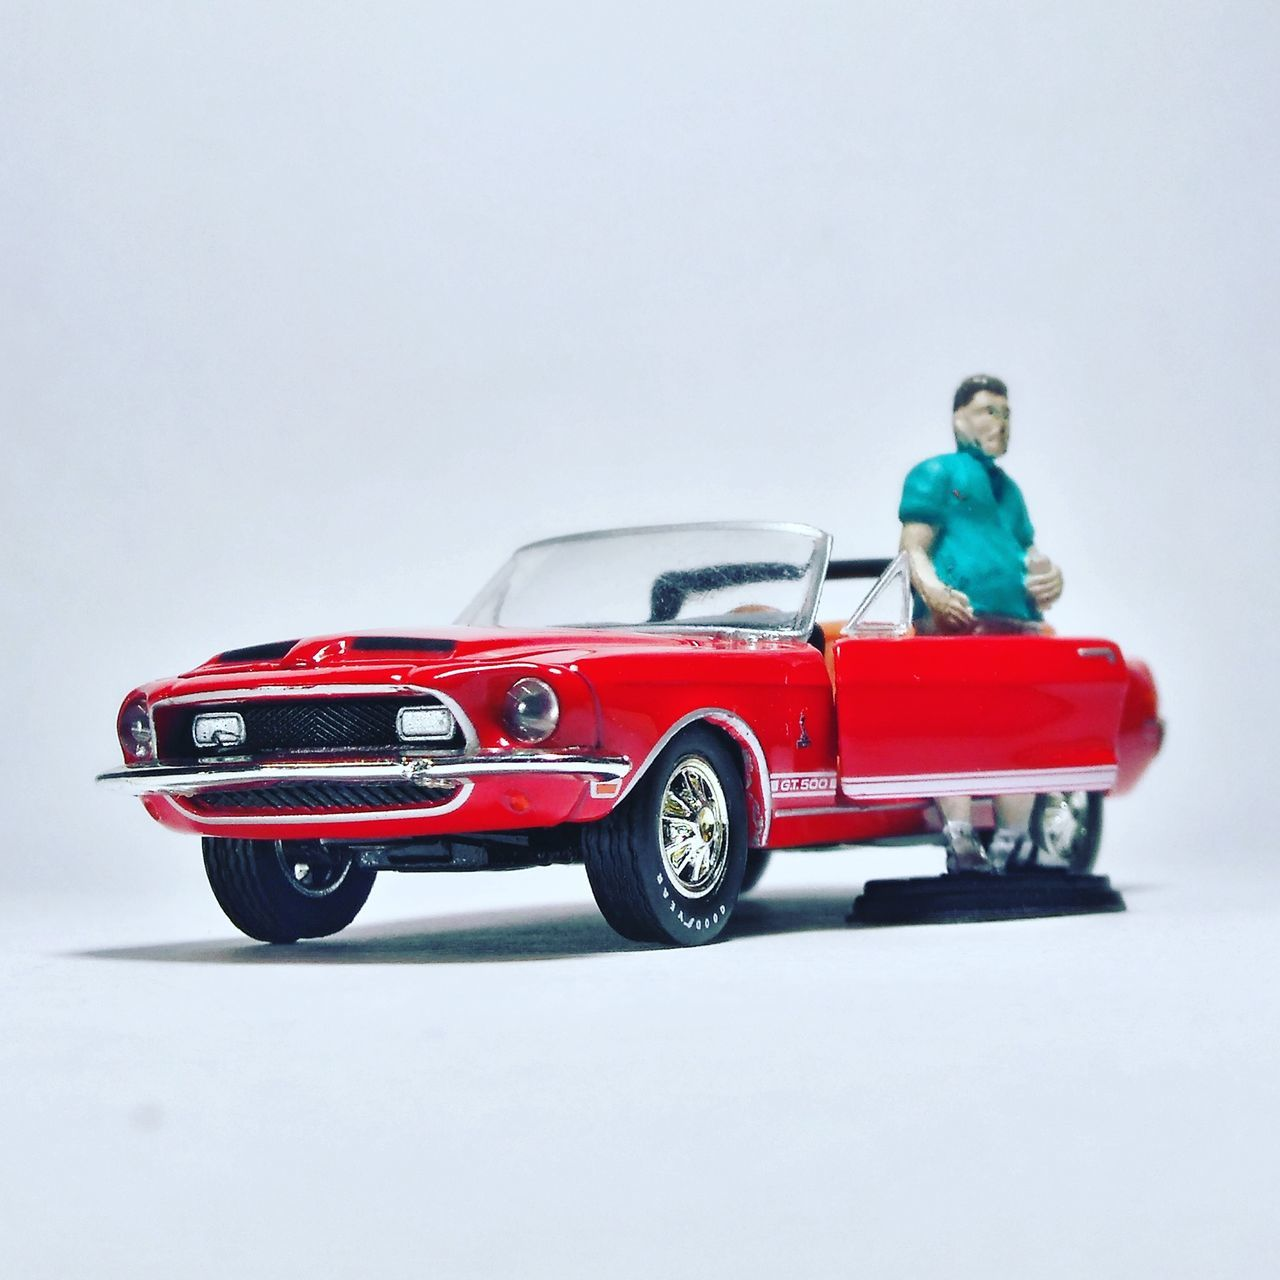 Mustang Love Diecastphotography Diecastphotographyindonesia HotWheels Collector Diorama Like Photos Dioramas Diecastcar